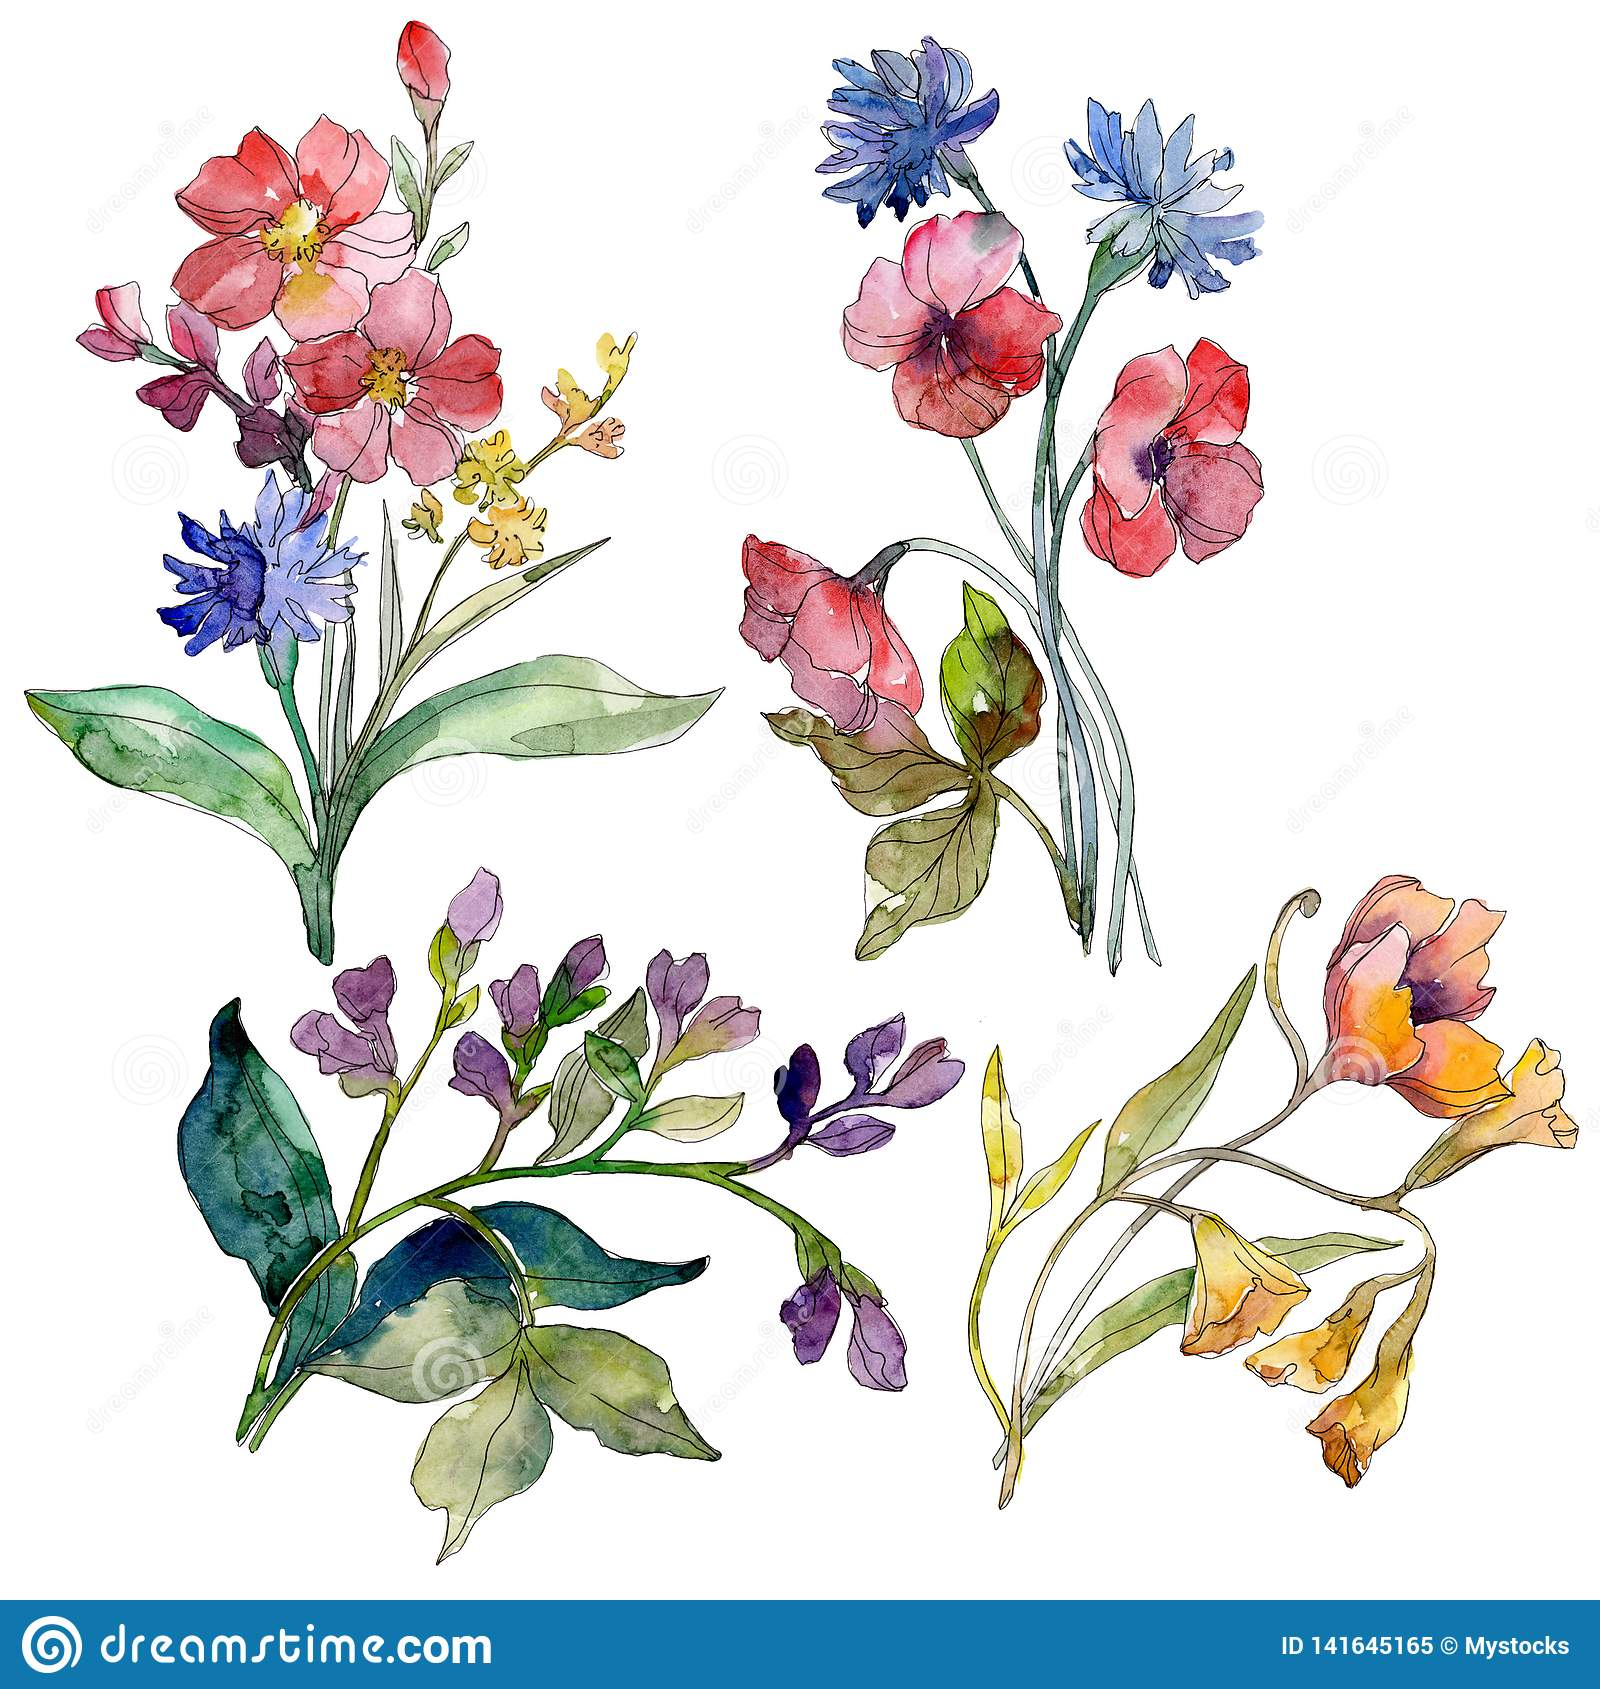 Wildflower Bouquet Floral Botanical Flowers Watercolor Background Set Isolated Wildflowers Illustration Element Stock Illustration Illustration Of Phlox Cyanus 141645165